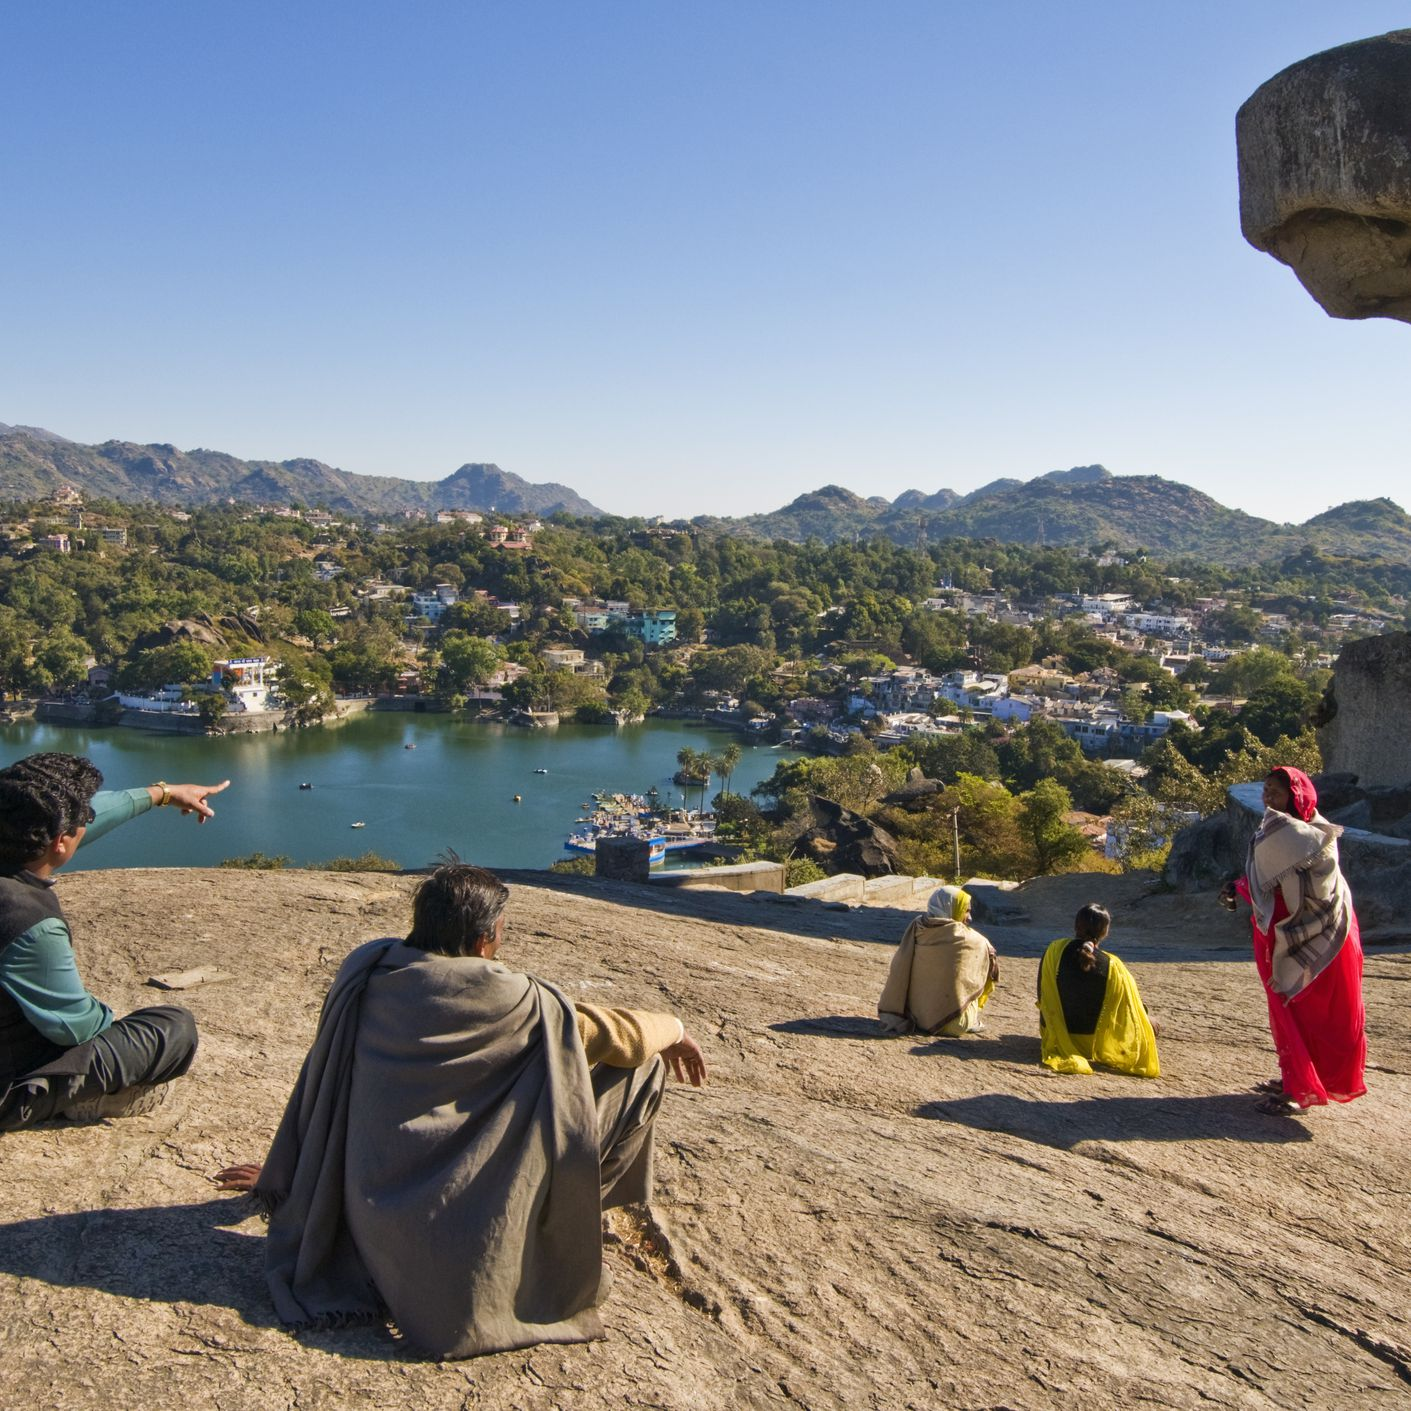 The Top 10 Things to Do in Mount Abu, Rajasthan